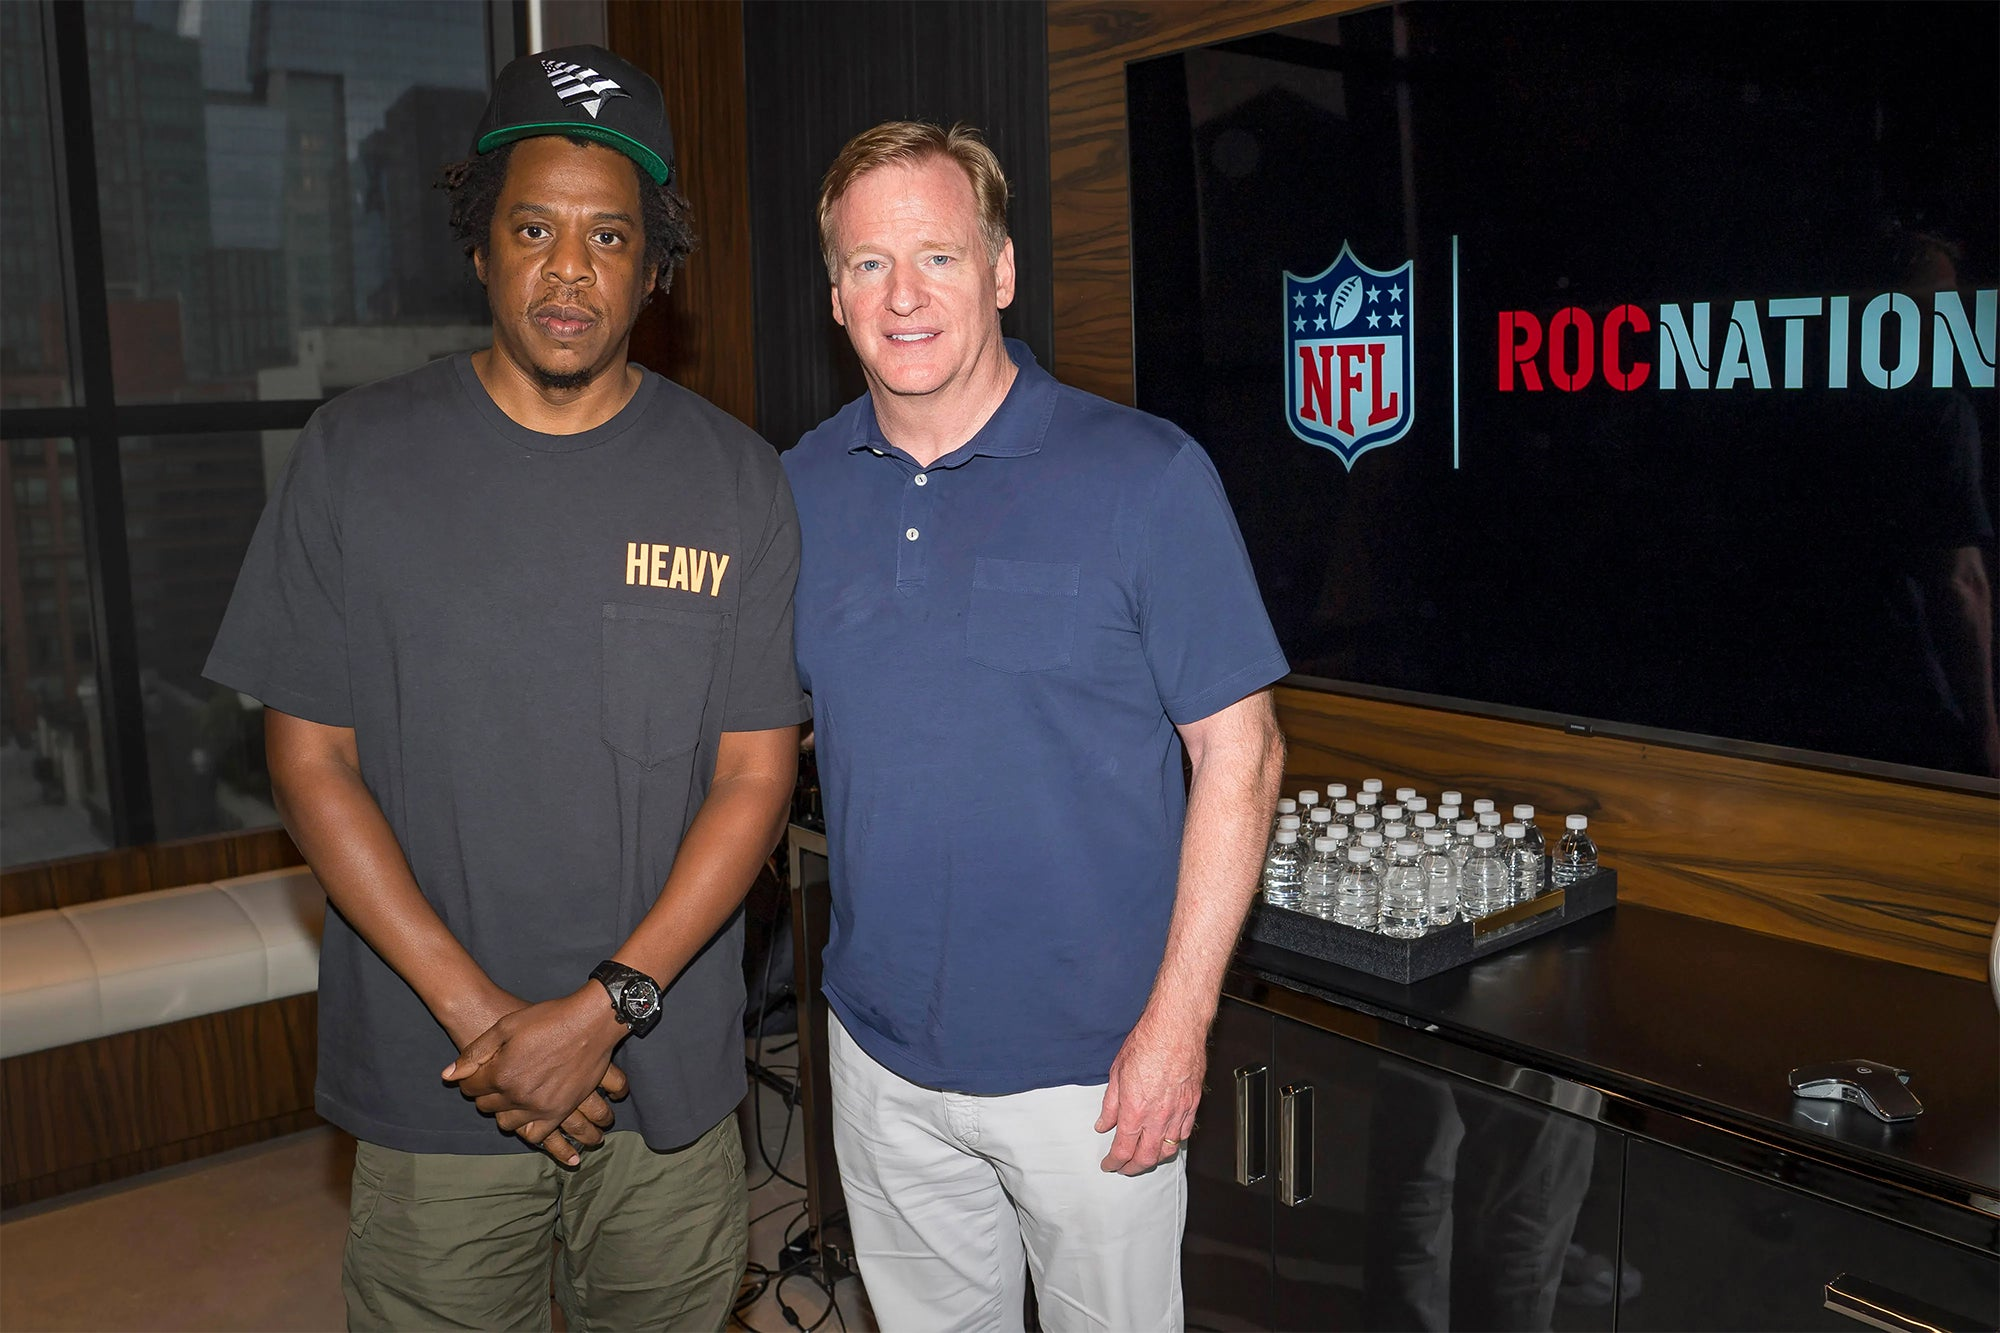 The Genius Behind the JAY Z x NFL Collaboration